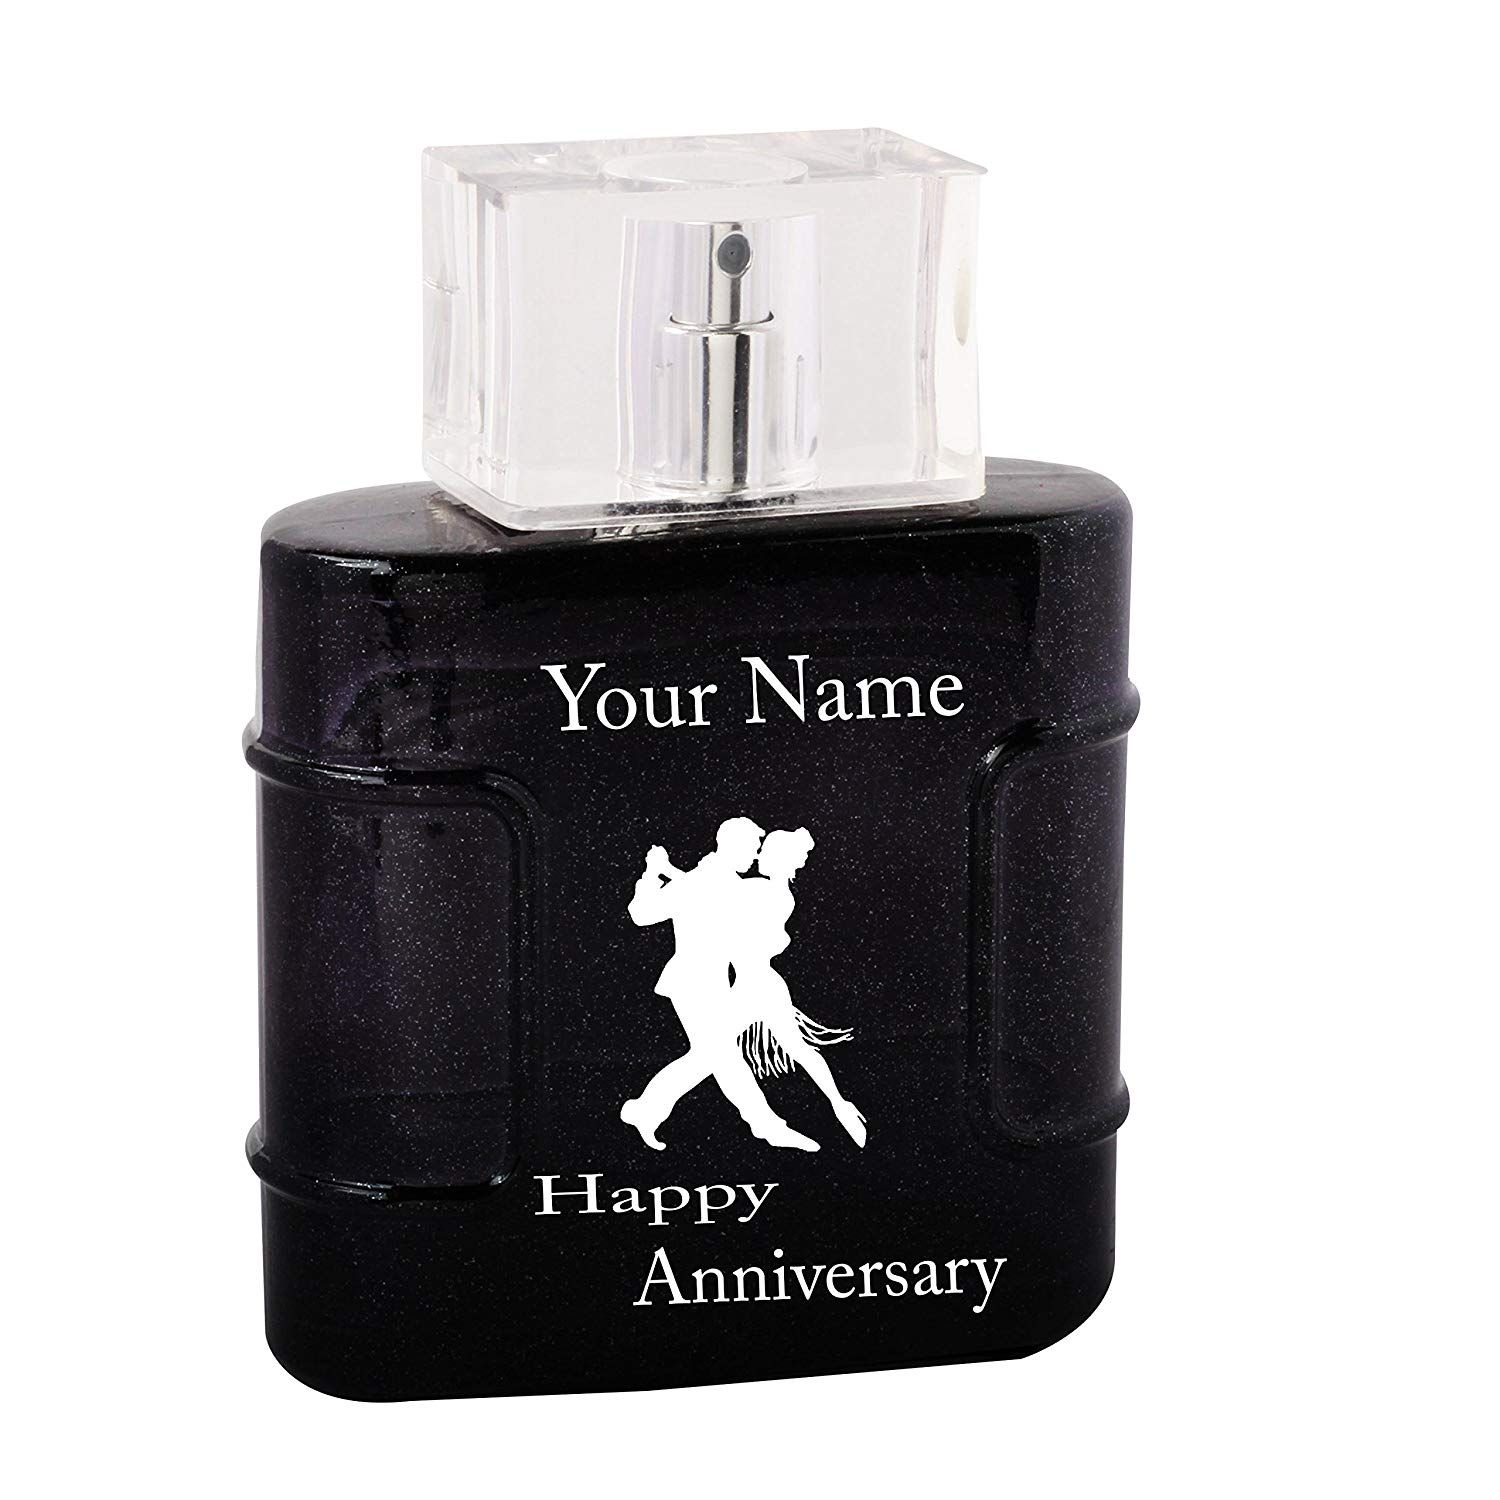 Romantic Anniversary Gifts for Husband Buy Anniversary